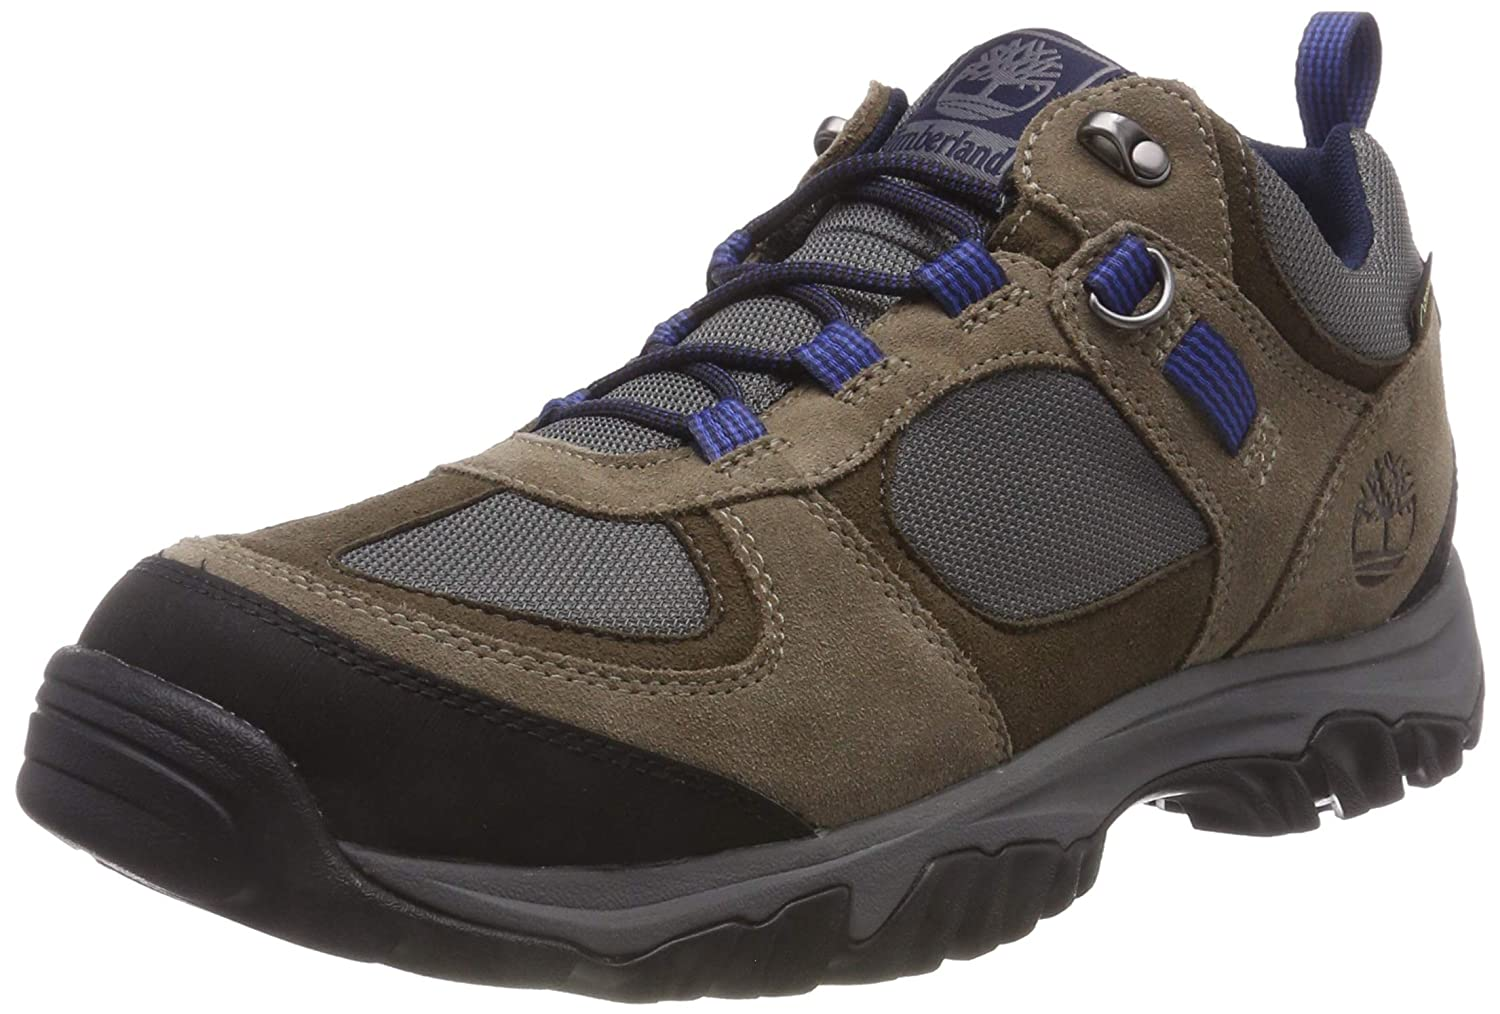 TALLA 40 EU. Timberland MT. Major Waterproof, Zapatos de Cordones Oxford para Hombre